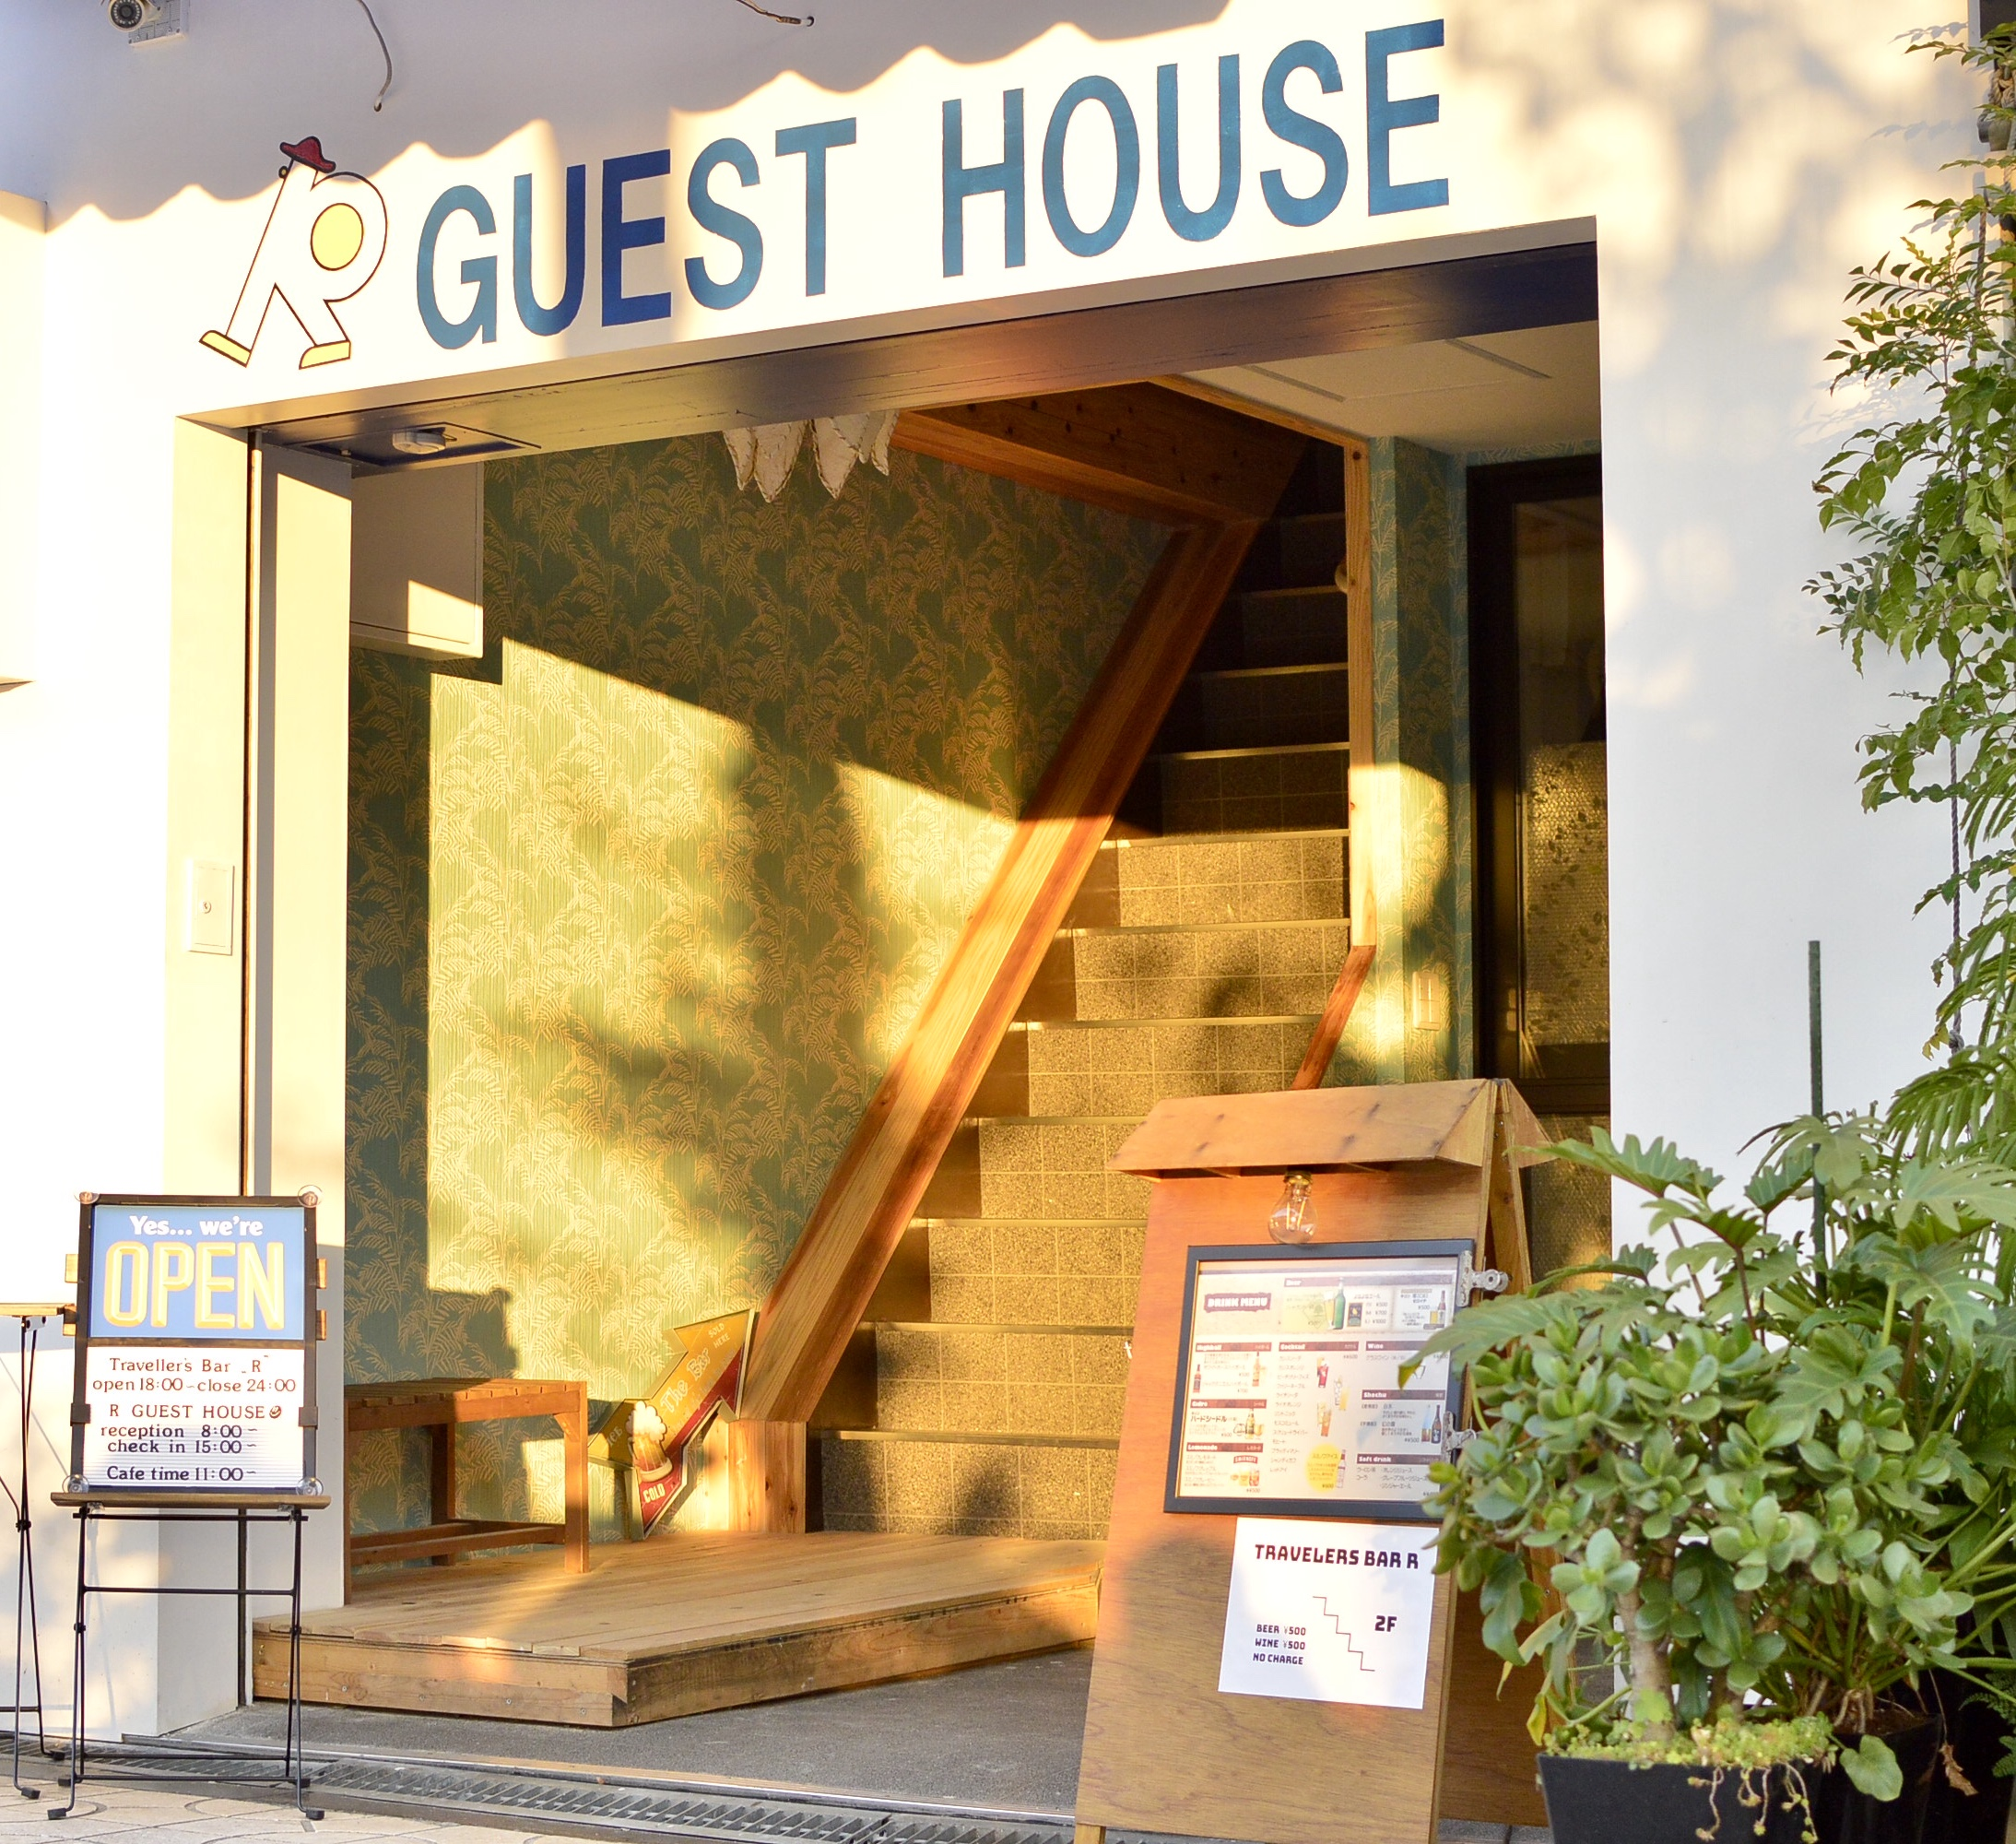 R GUEST HOUSE